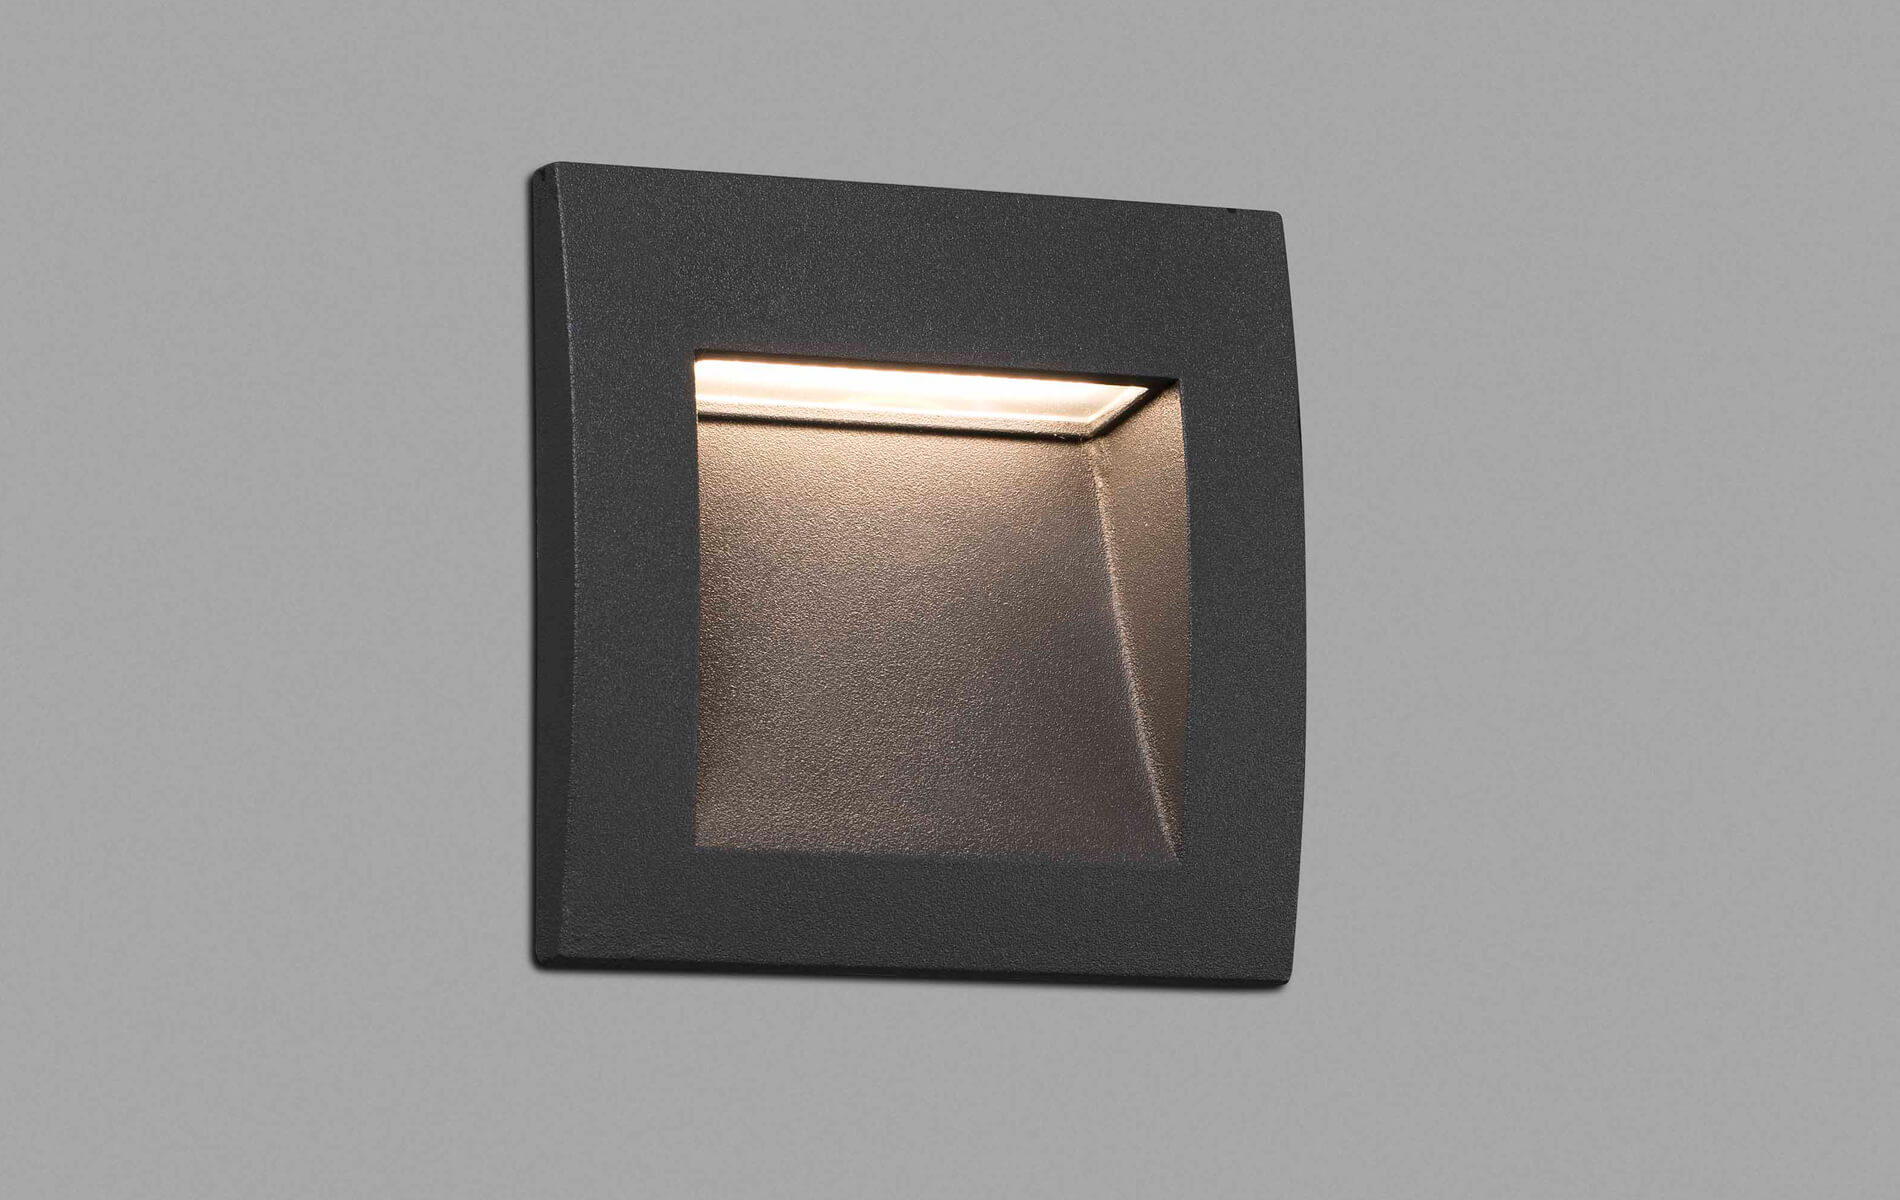 More information of Faro SEDNA outdoor wall lamp